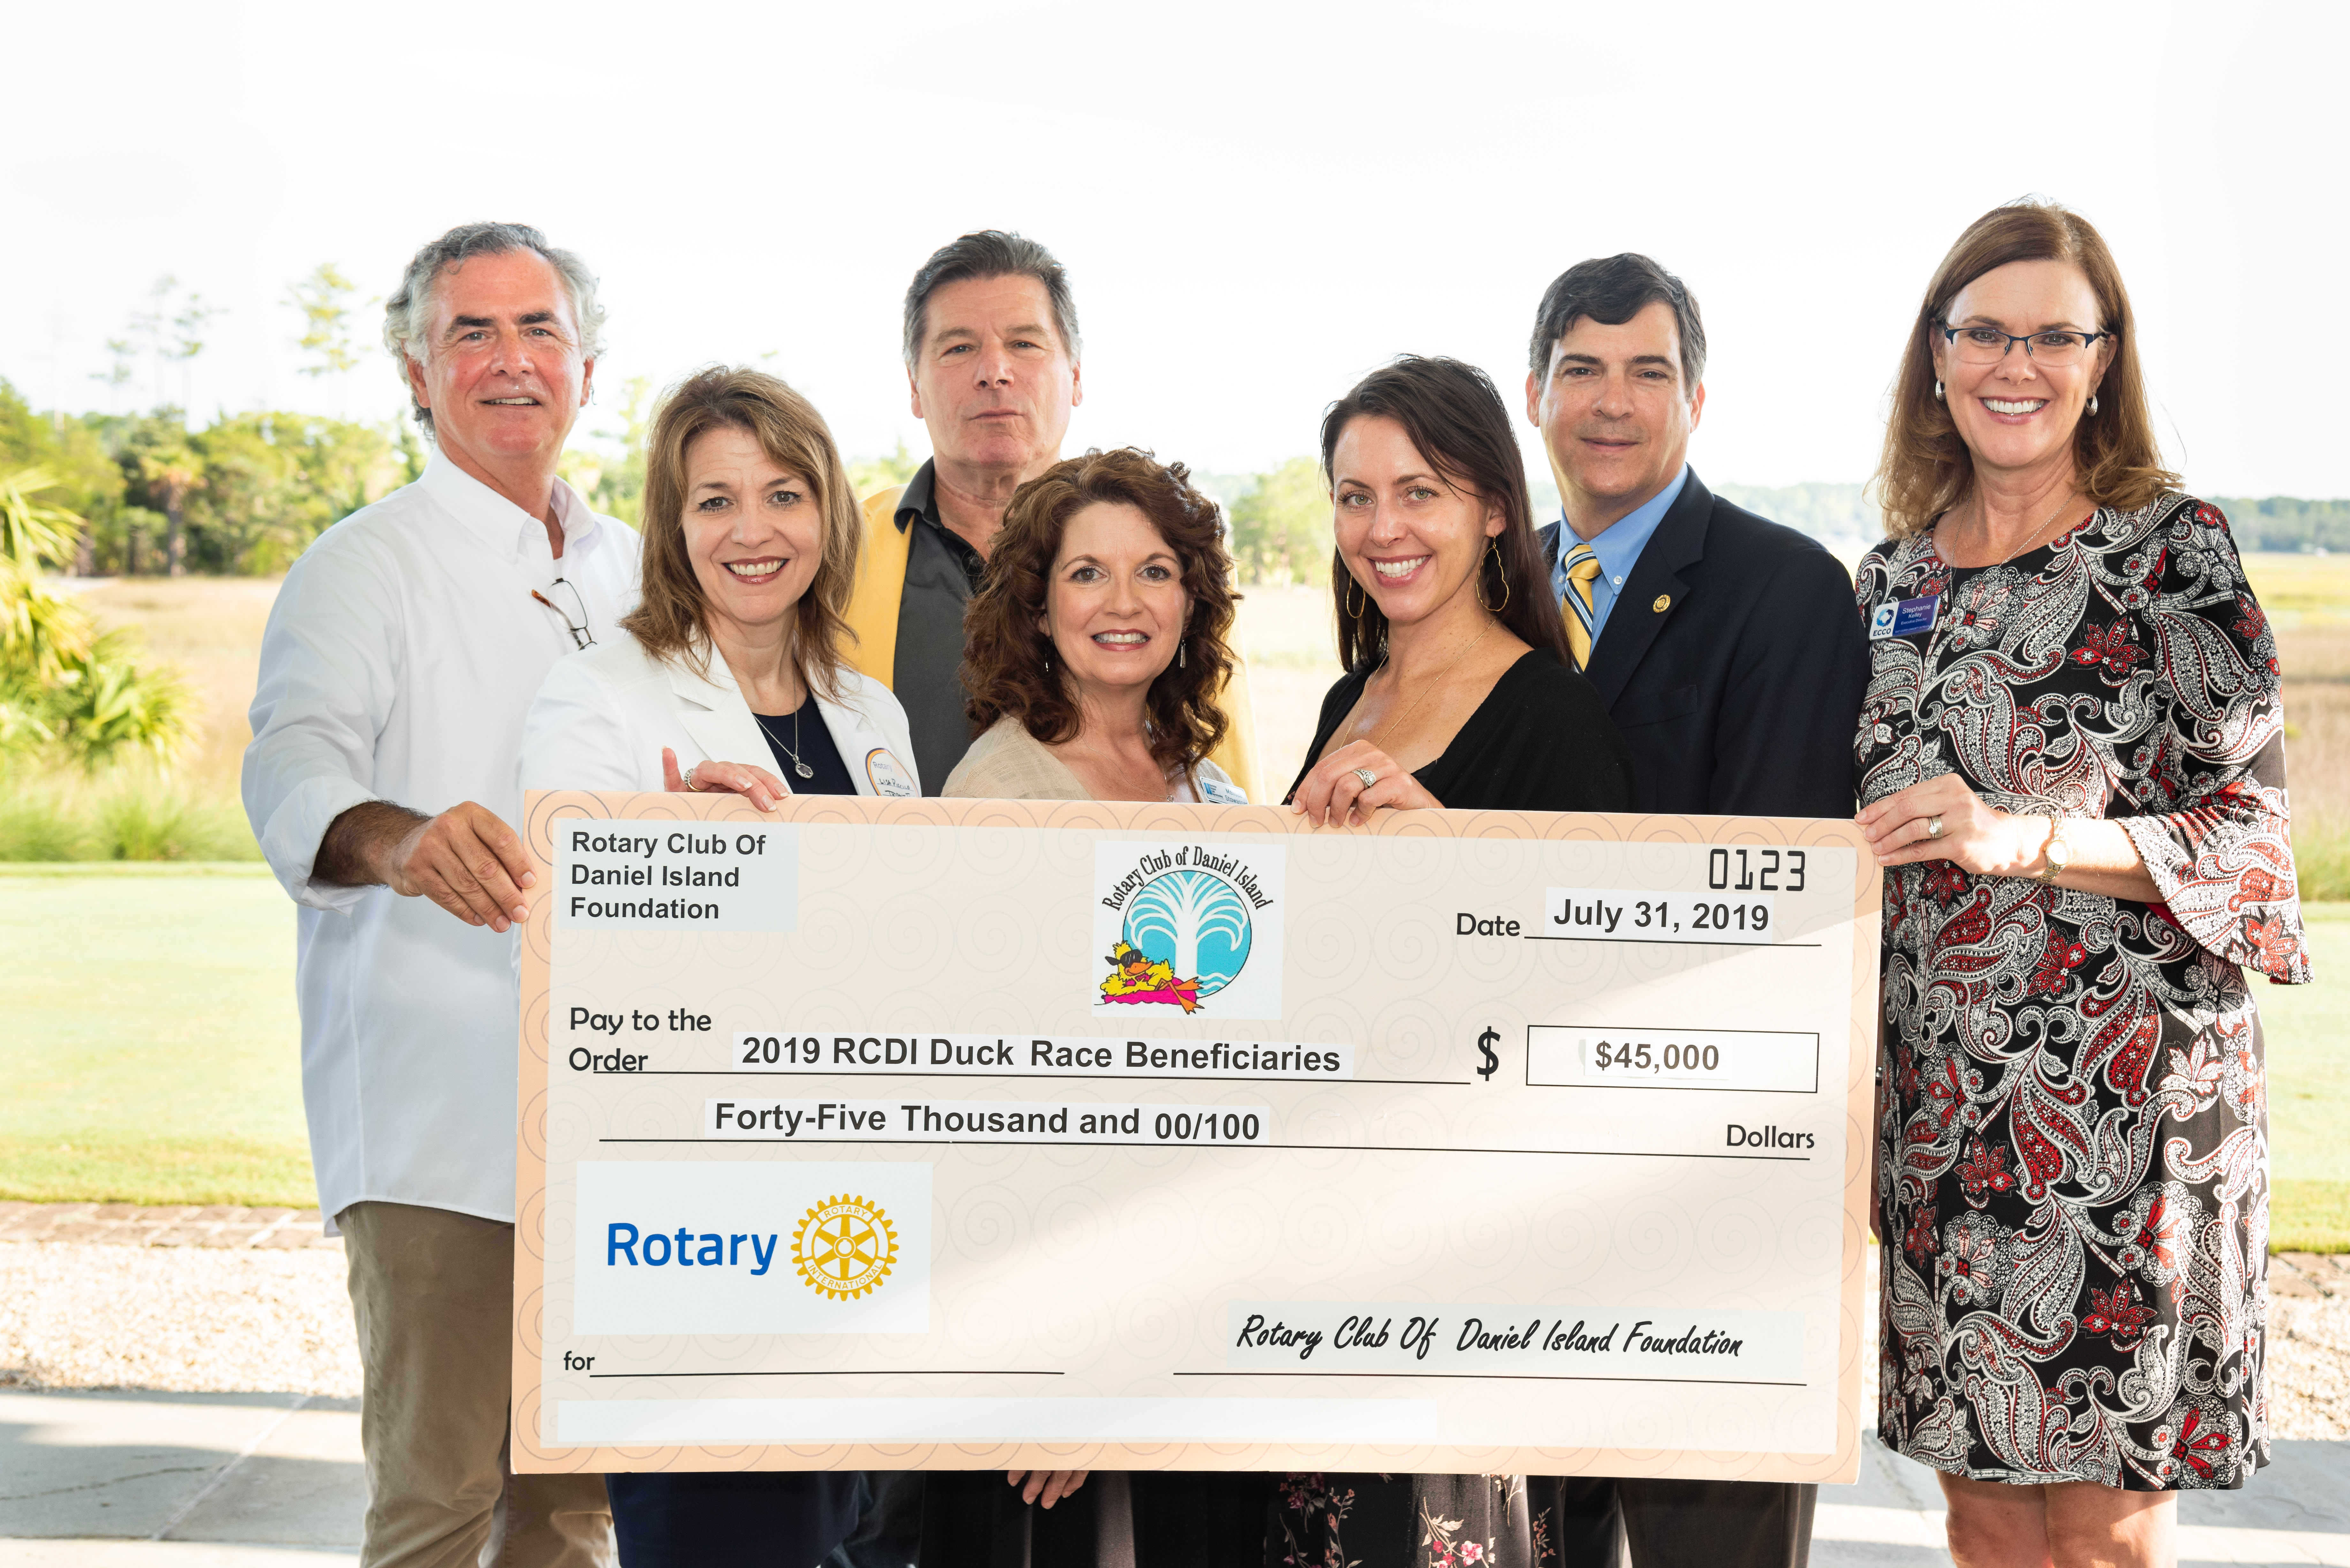 The beneficiaries of this year's Rotary Duck Race were delighted to receive checks from the Rotary Club of Daniel Island last week. Pictured left to right are George Roberts, president and CEO of East Cooper Meals on Wheels; Lisa Piccolo of Trident Technical College; Bill Cannon, Rotary president; Melissa Stowasser of Trident Technical College; Jeanine Gillette of Camp Happy Days; Keith Rumrill of Trident Technical College; and Stephanie Kelley of East Cooper Community Outreach.